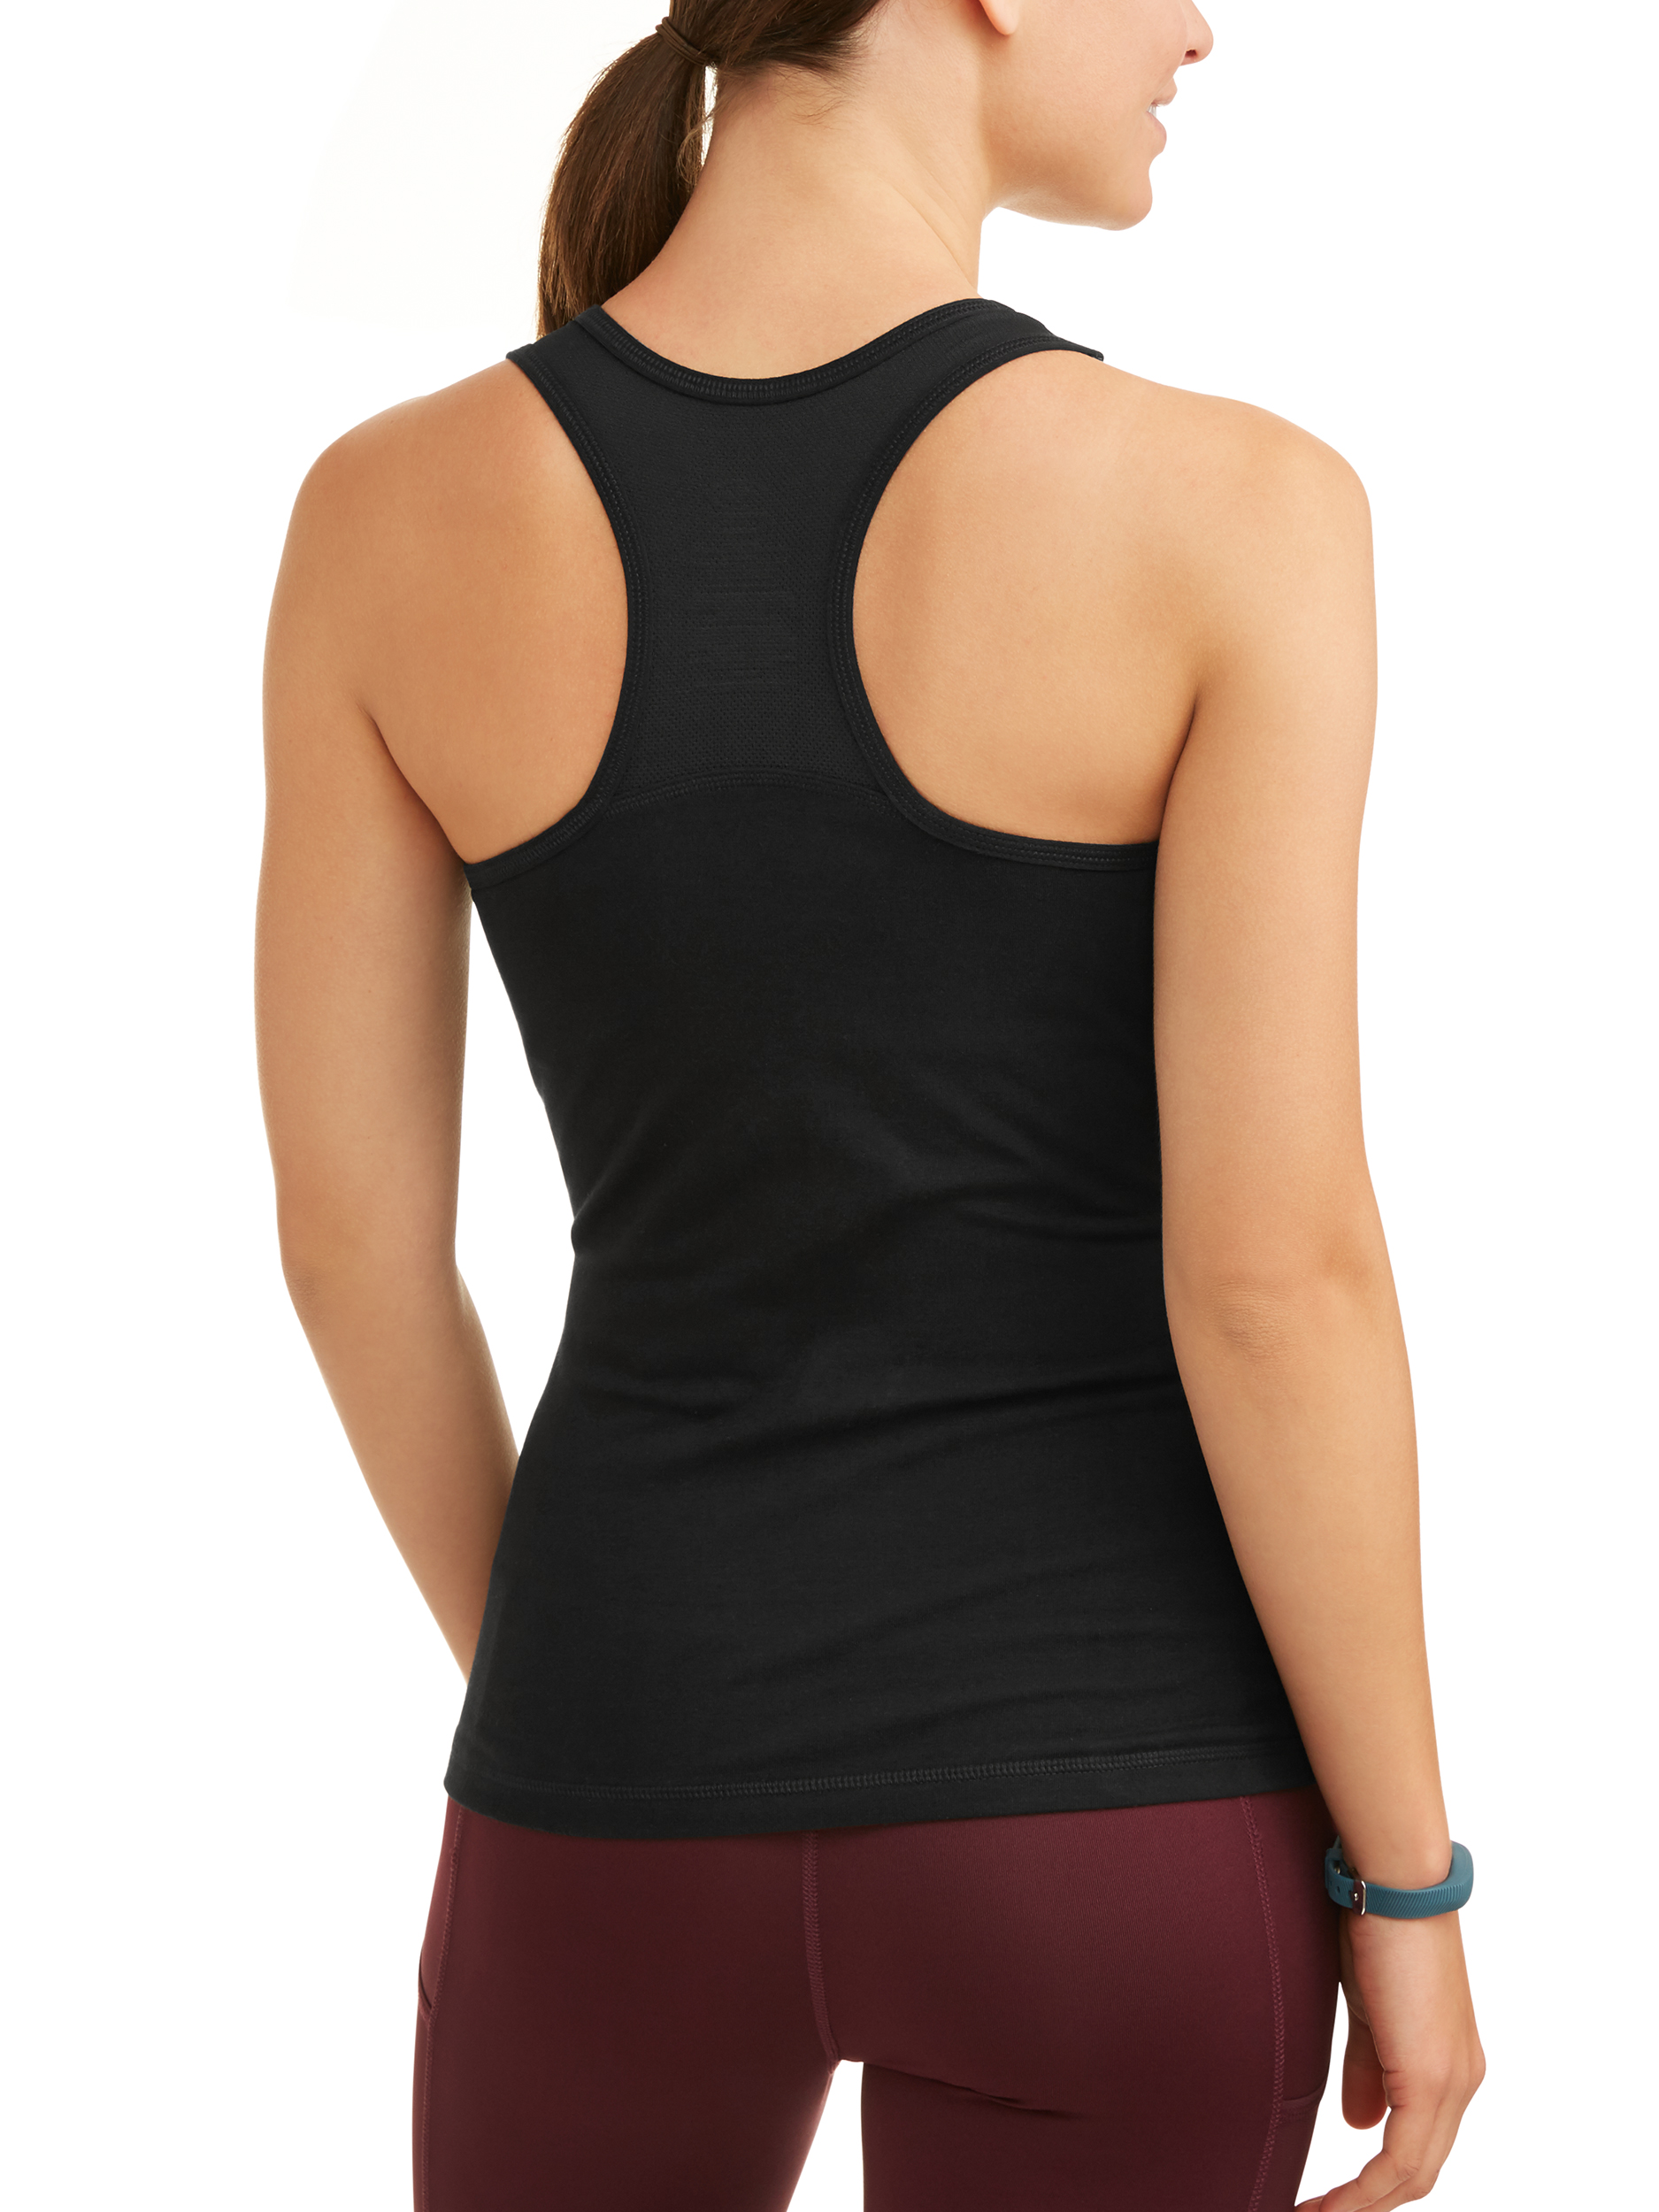 248f61cbe9bf3 Athletic Works - Women s Dri More Core Shelf-Bra Racerback Tank -  Walmart.com